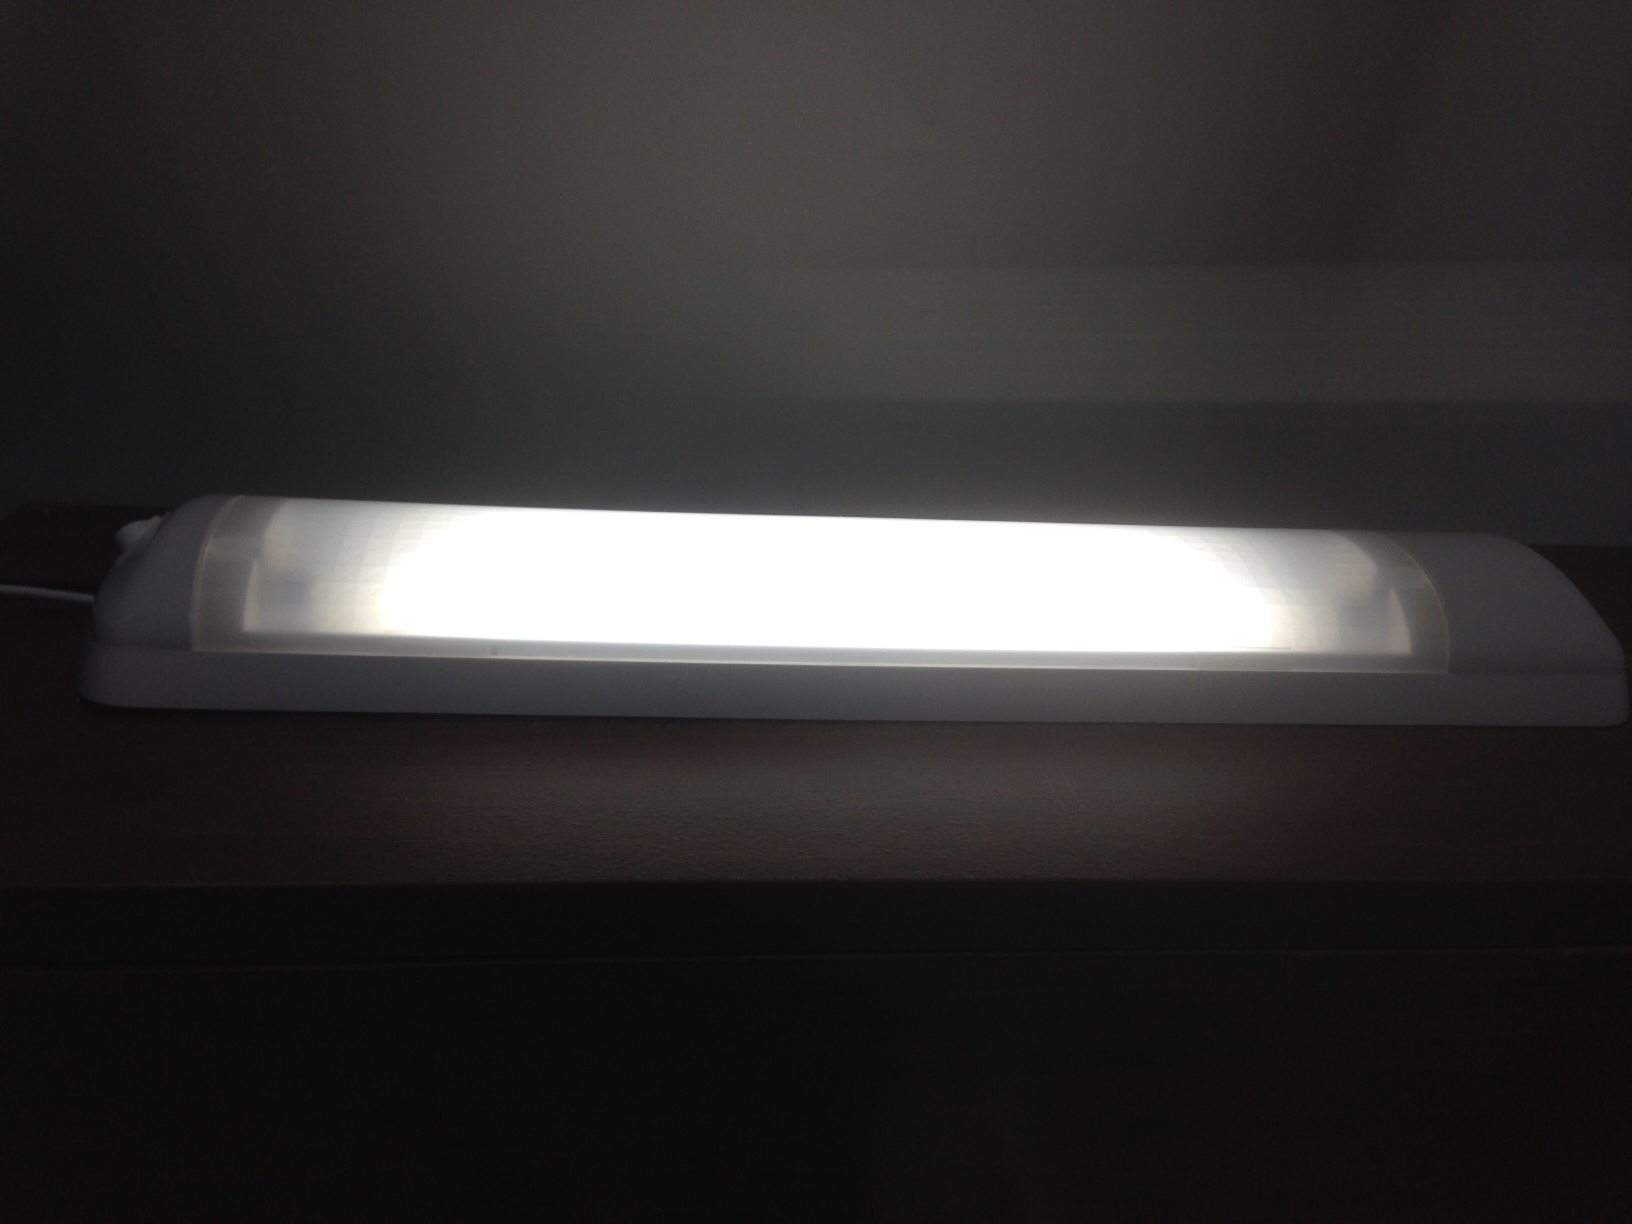 Led Ceiling Light Panel Review